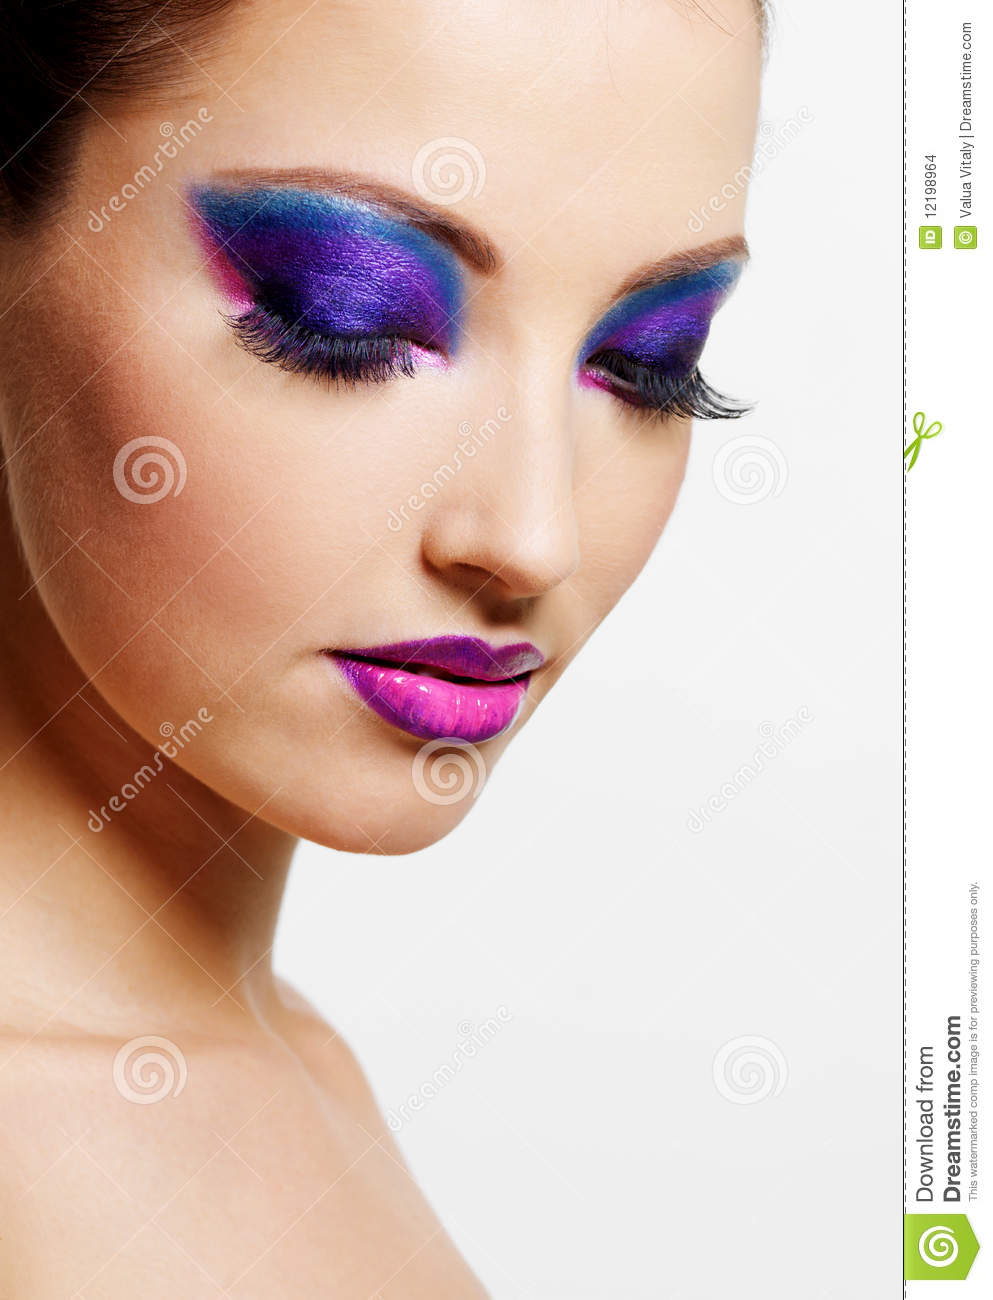 Beauty Make Up: Female Face With Bright Beauty Fashion Make-up Stock Photo